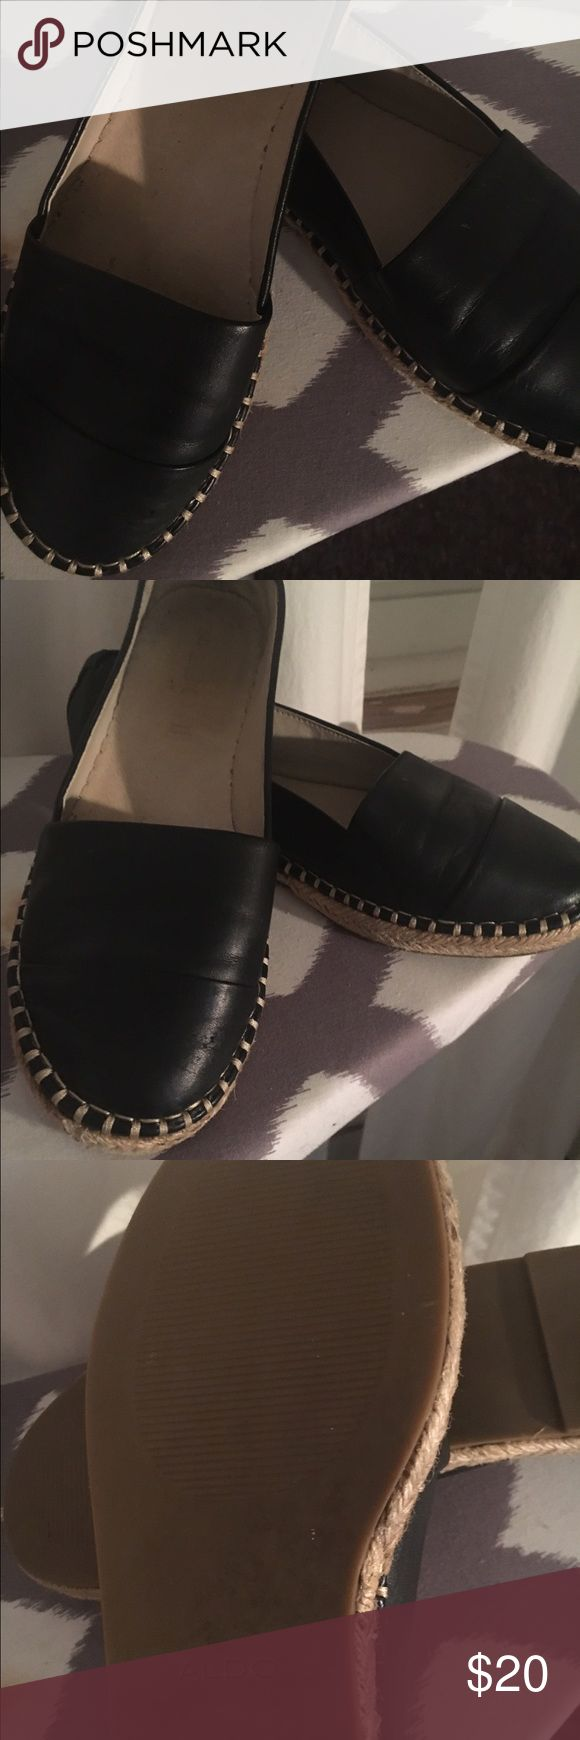 Aldo leather flats Super cute black leather flats with an espadrilles sole. Great condition. Only worn a handful of times. Aldo Shoes Flats & Loafers